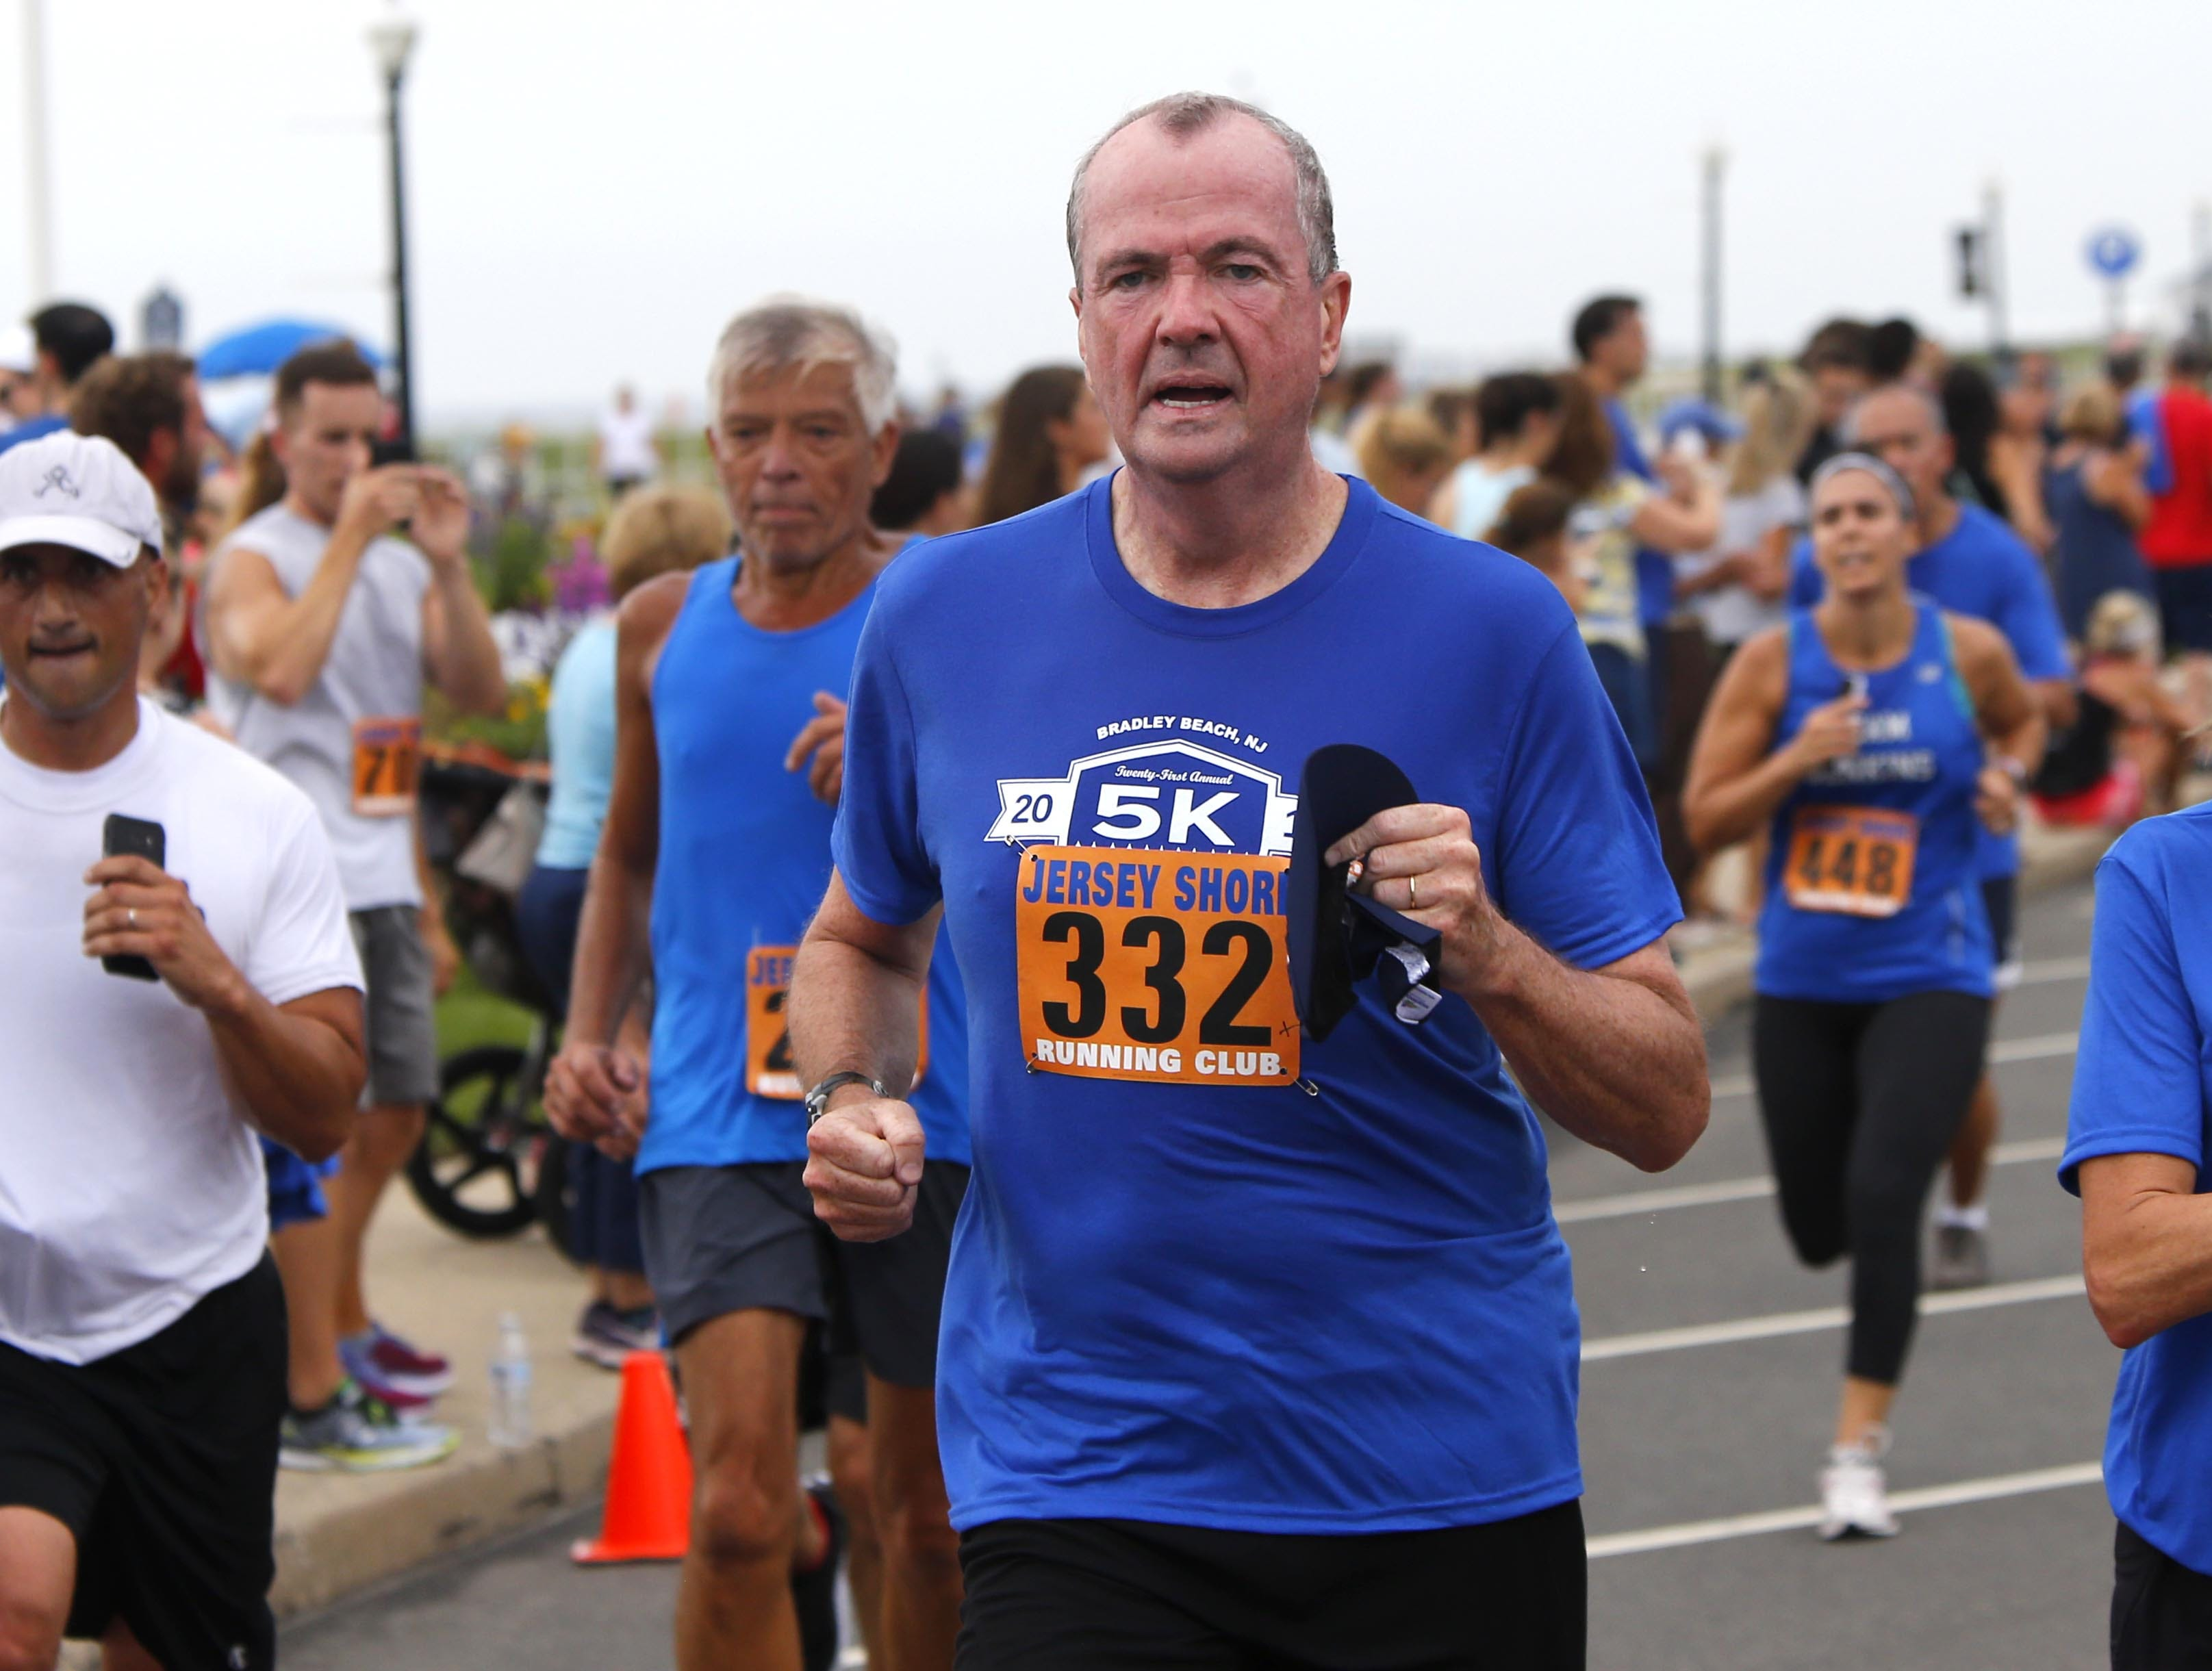 NJ Gov. Phil Murphy approaches the finish line for the Bradley Beach 5K race Saturday, Aug. 17, 2018.